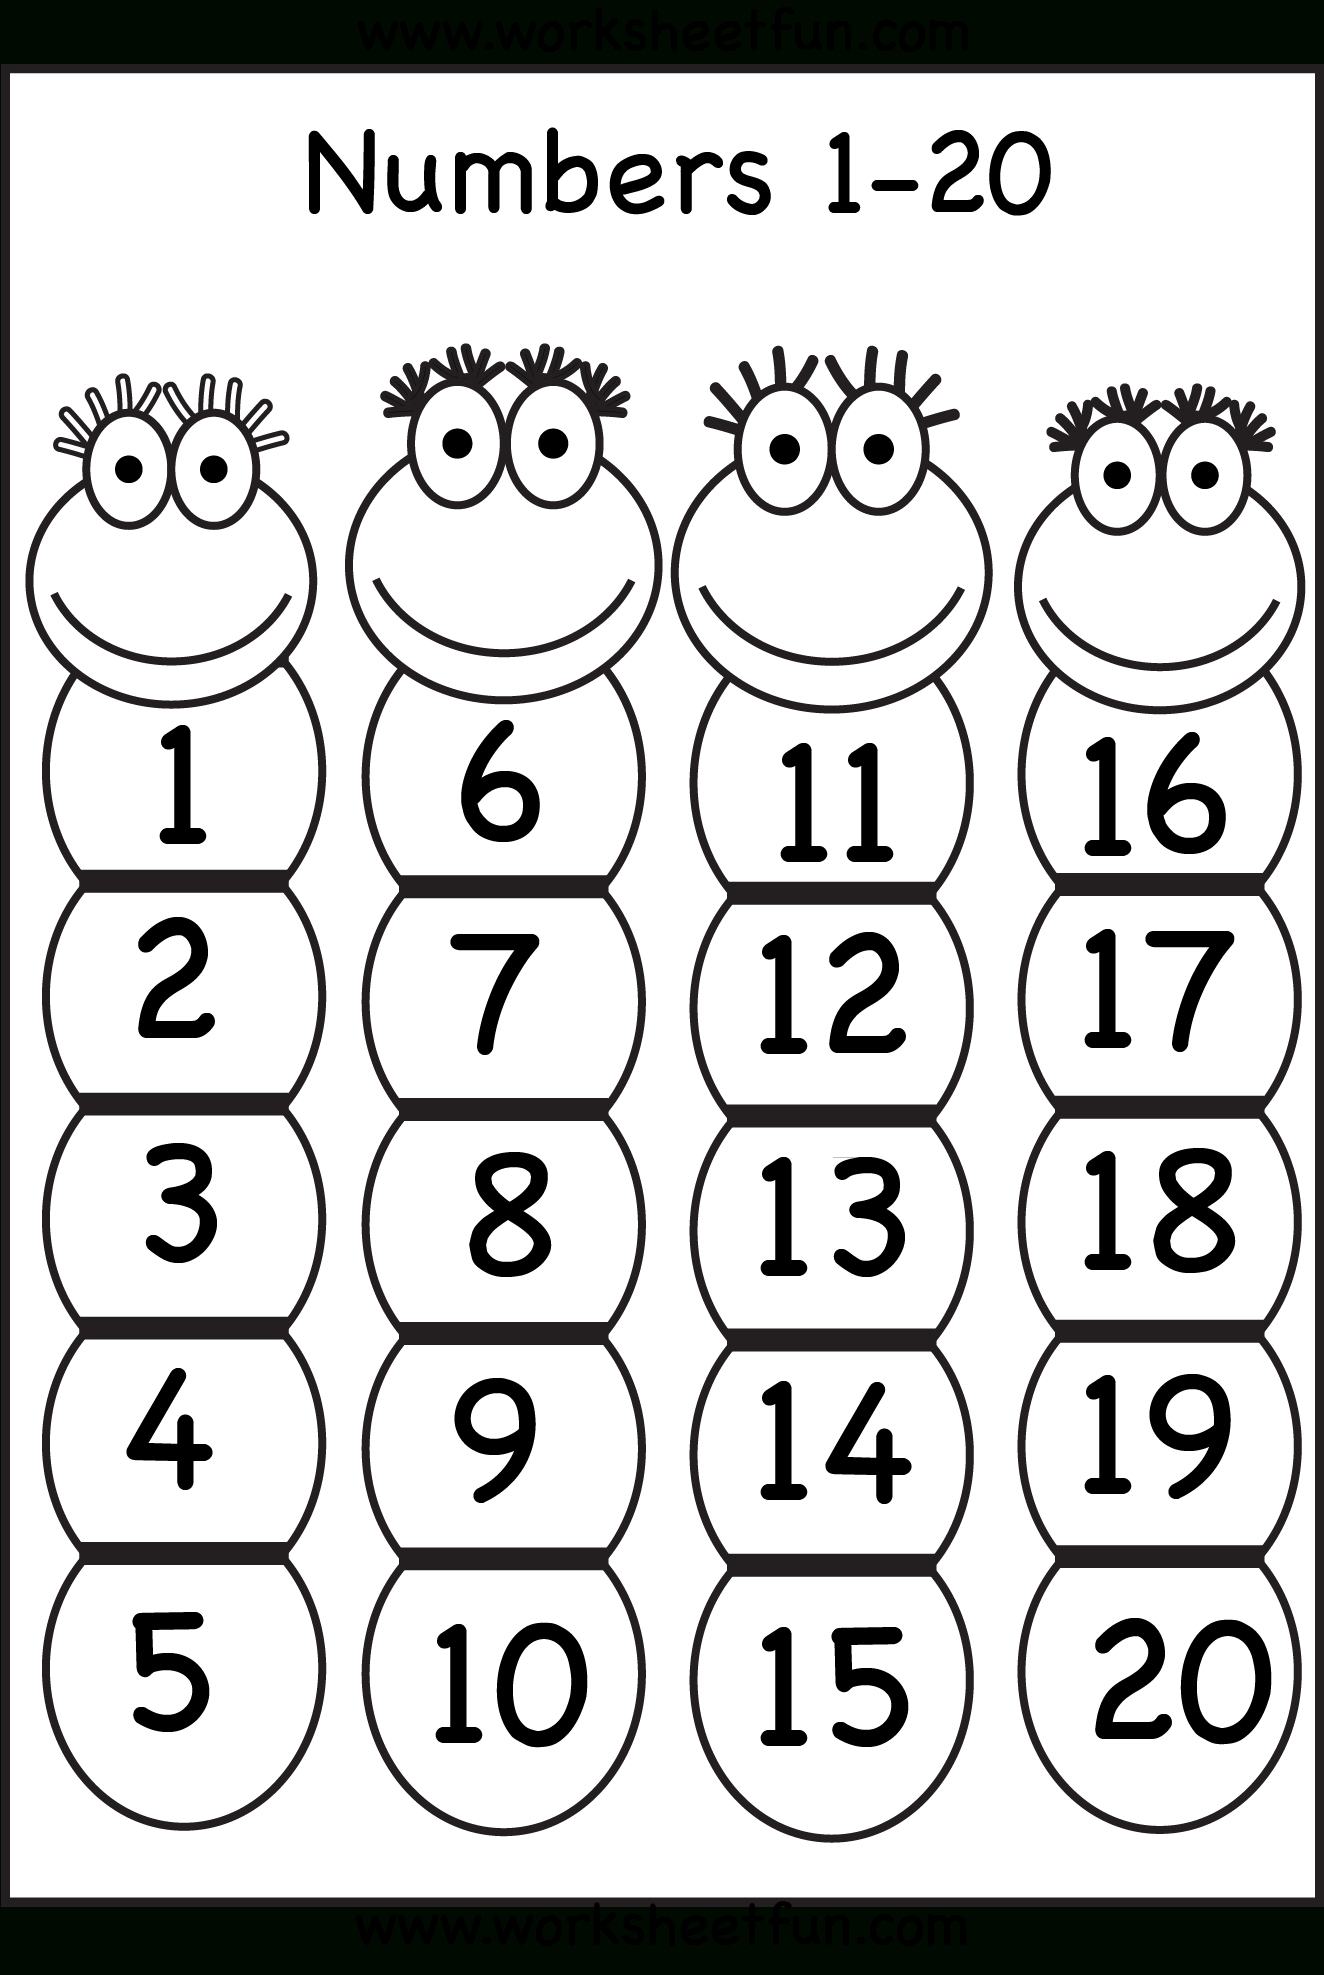 Numbers - Lessons - Tes Teach - Free Printable Number Chart 1 20